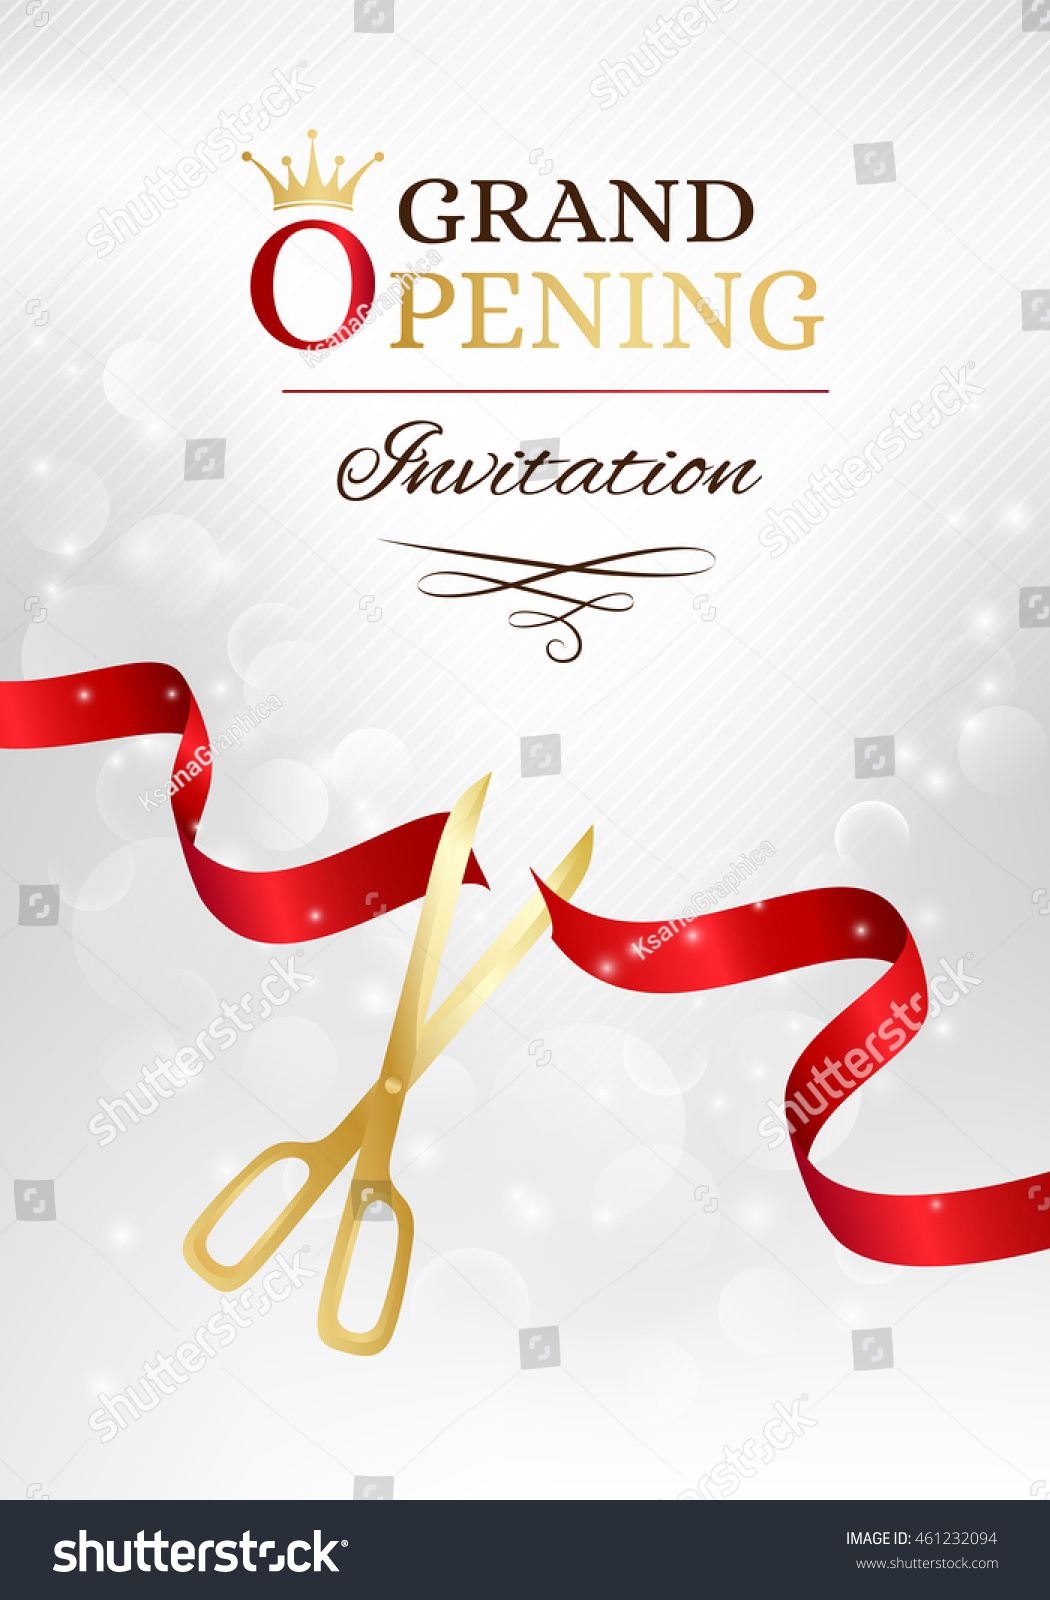 Grand Opening Invitation Card Cut Red Stock Vector 461232094 - Shutterstock